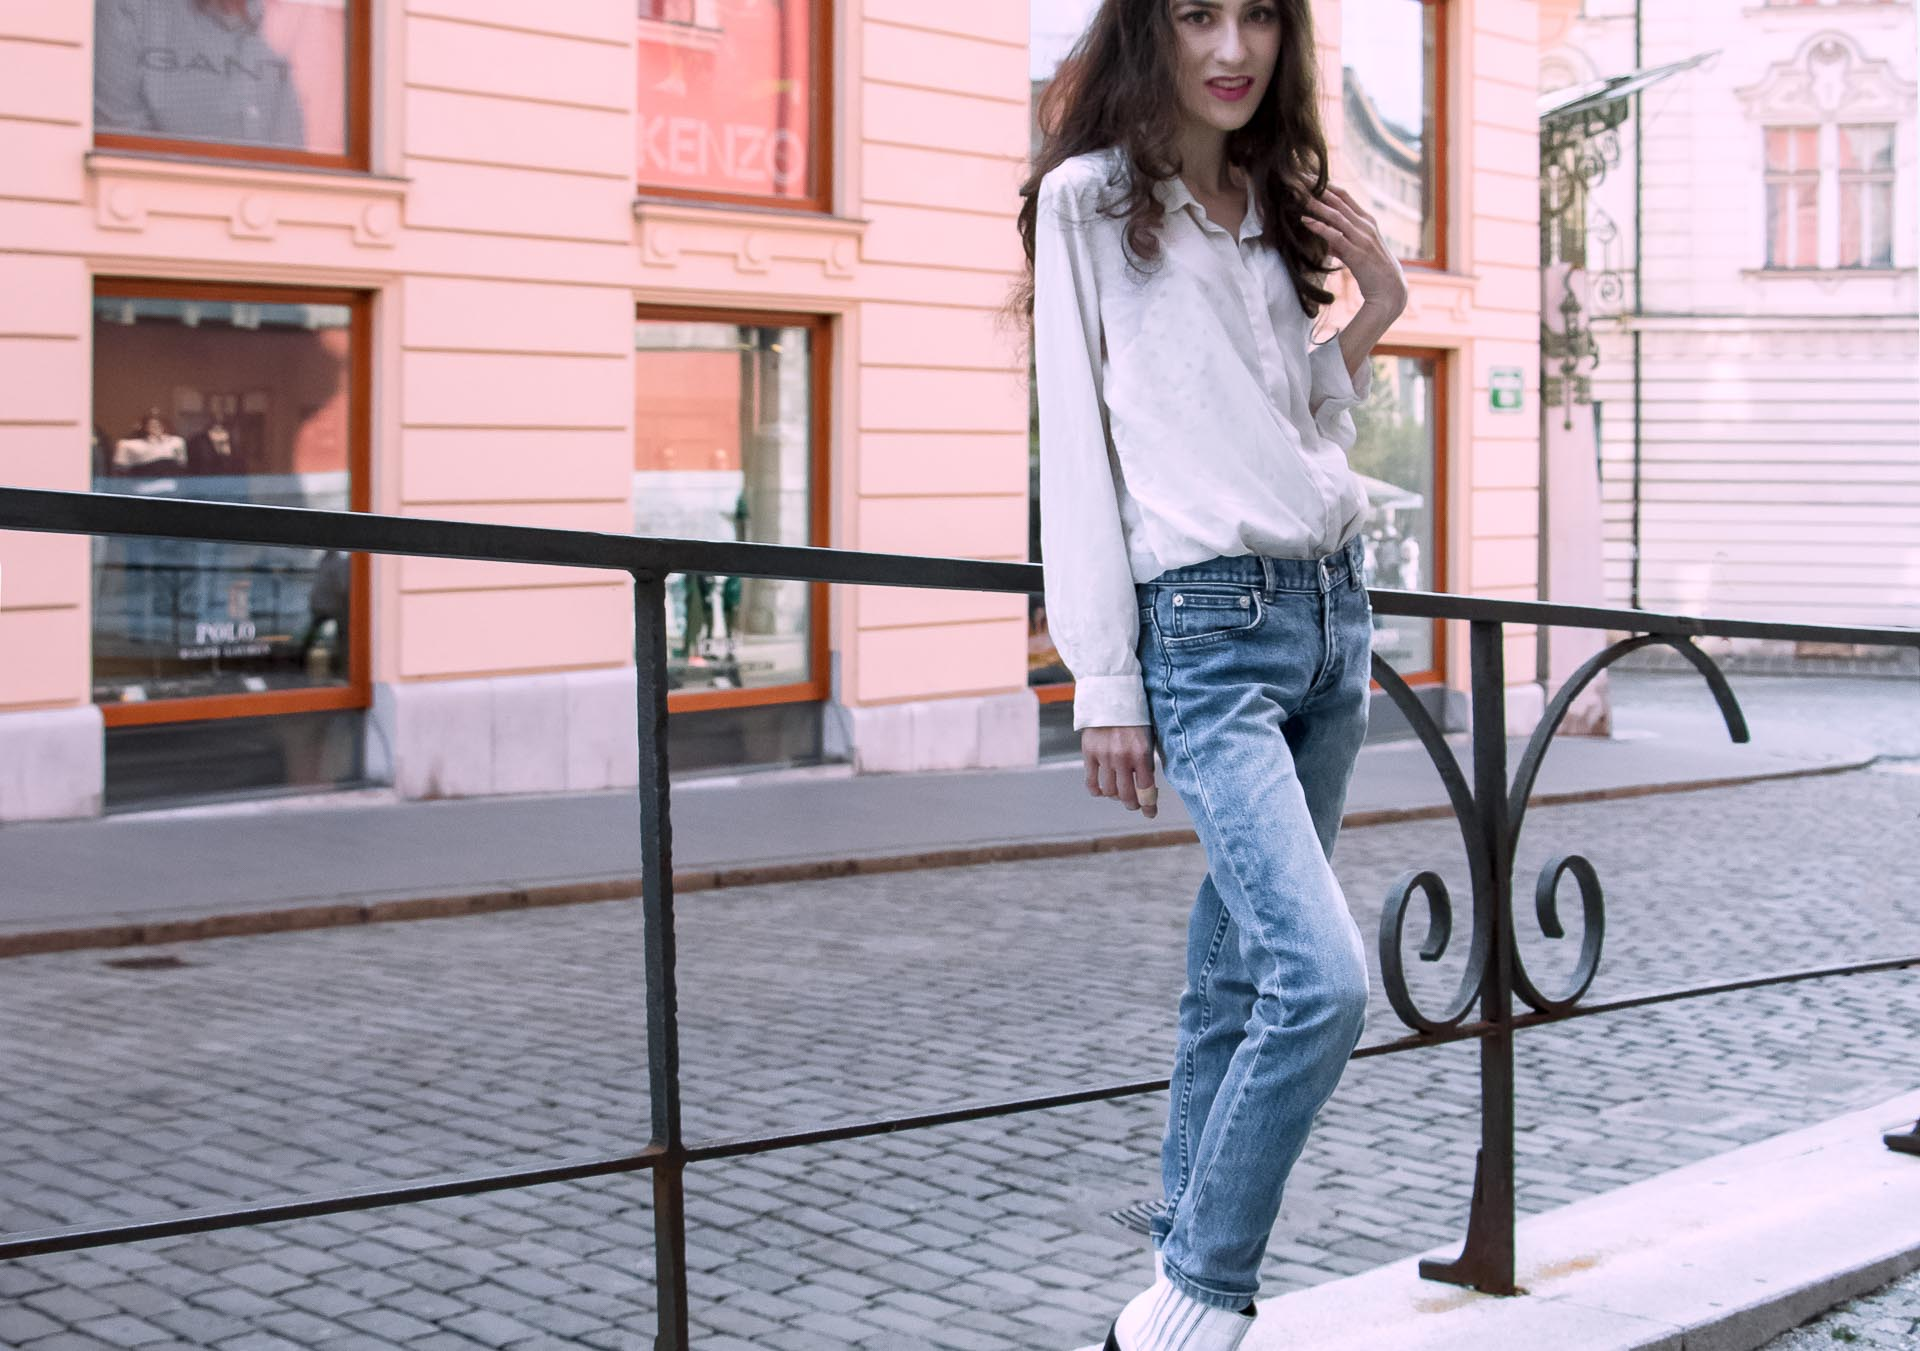 Beautiful Slovenian Fashion Blogger Veronika Lipar of Brunette from Wall wearing white silk shirt from Sandro Paris, white and black polka dot cami slip top, A.P.C. light blue jeans, white Ganni Western boots, chain strap shoulder bag standing on the street